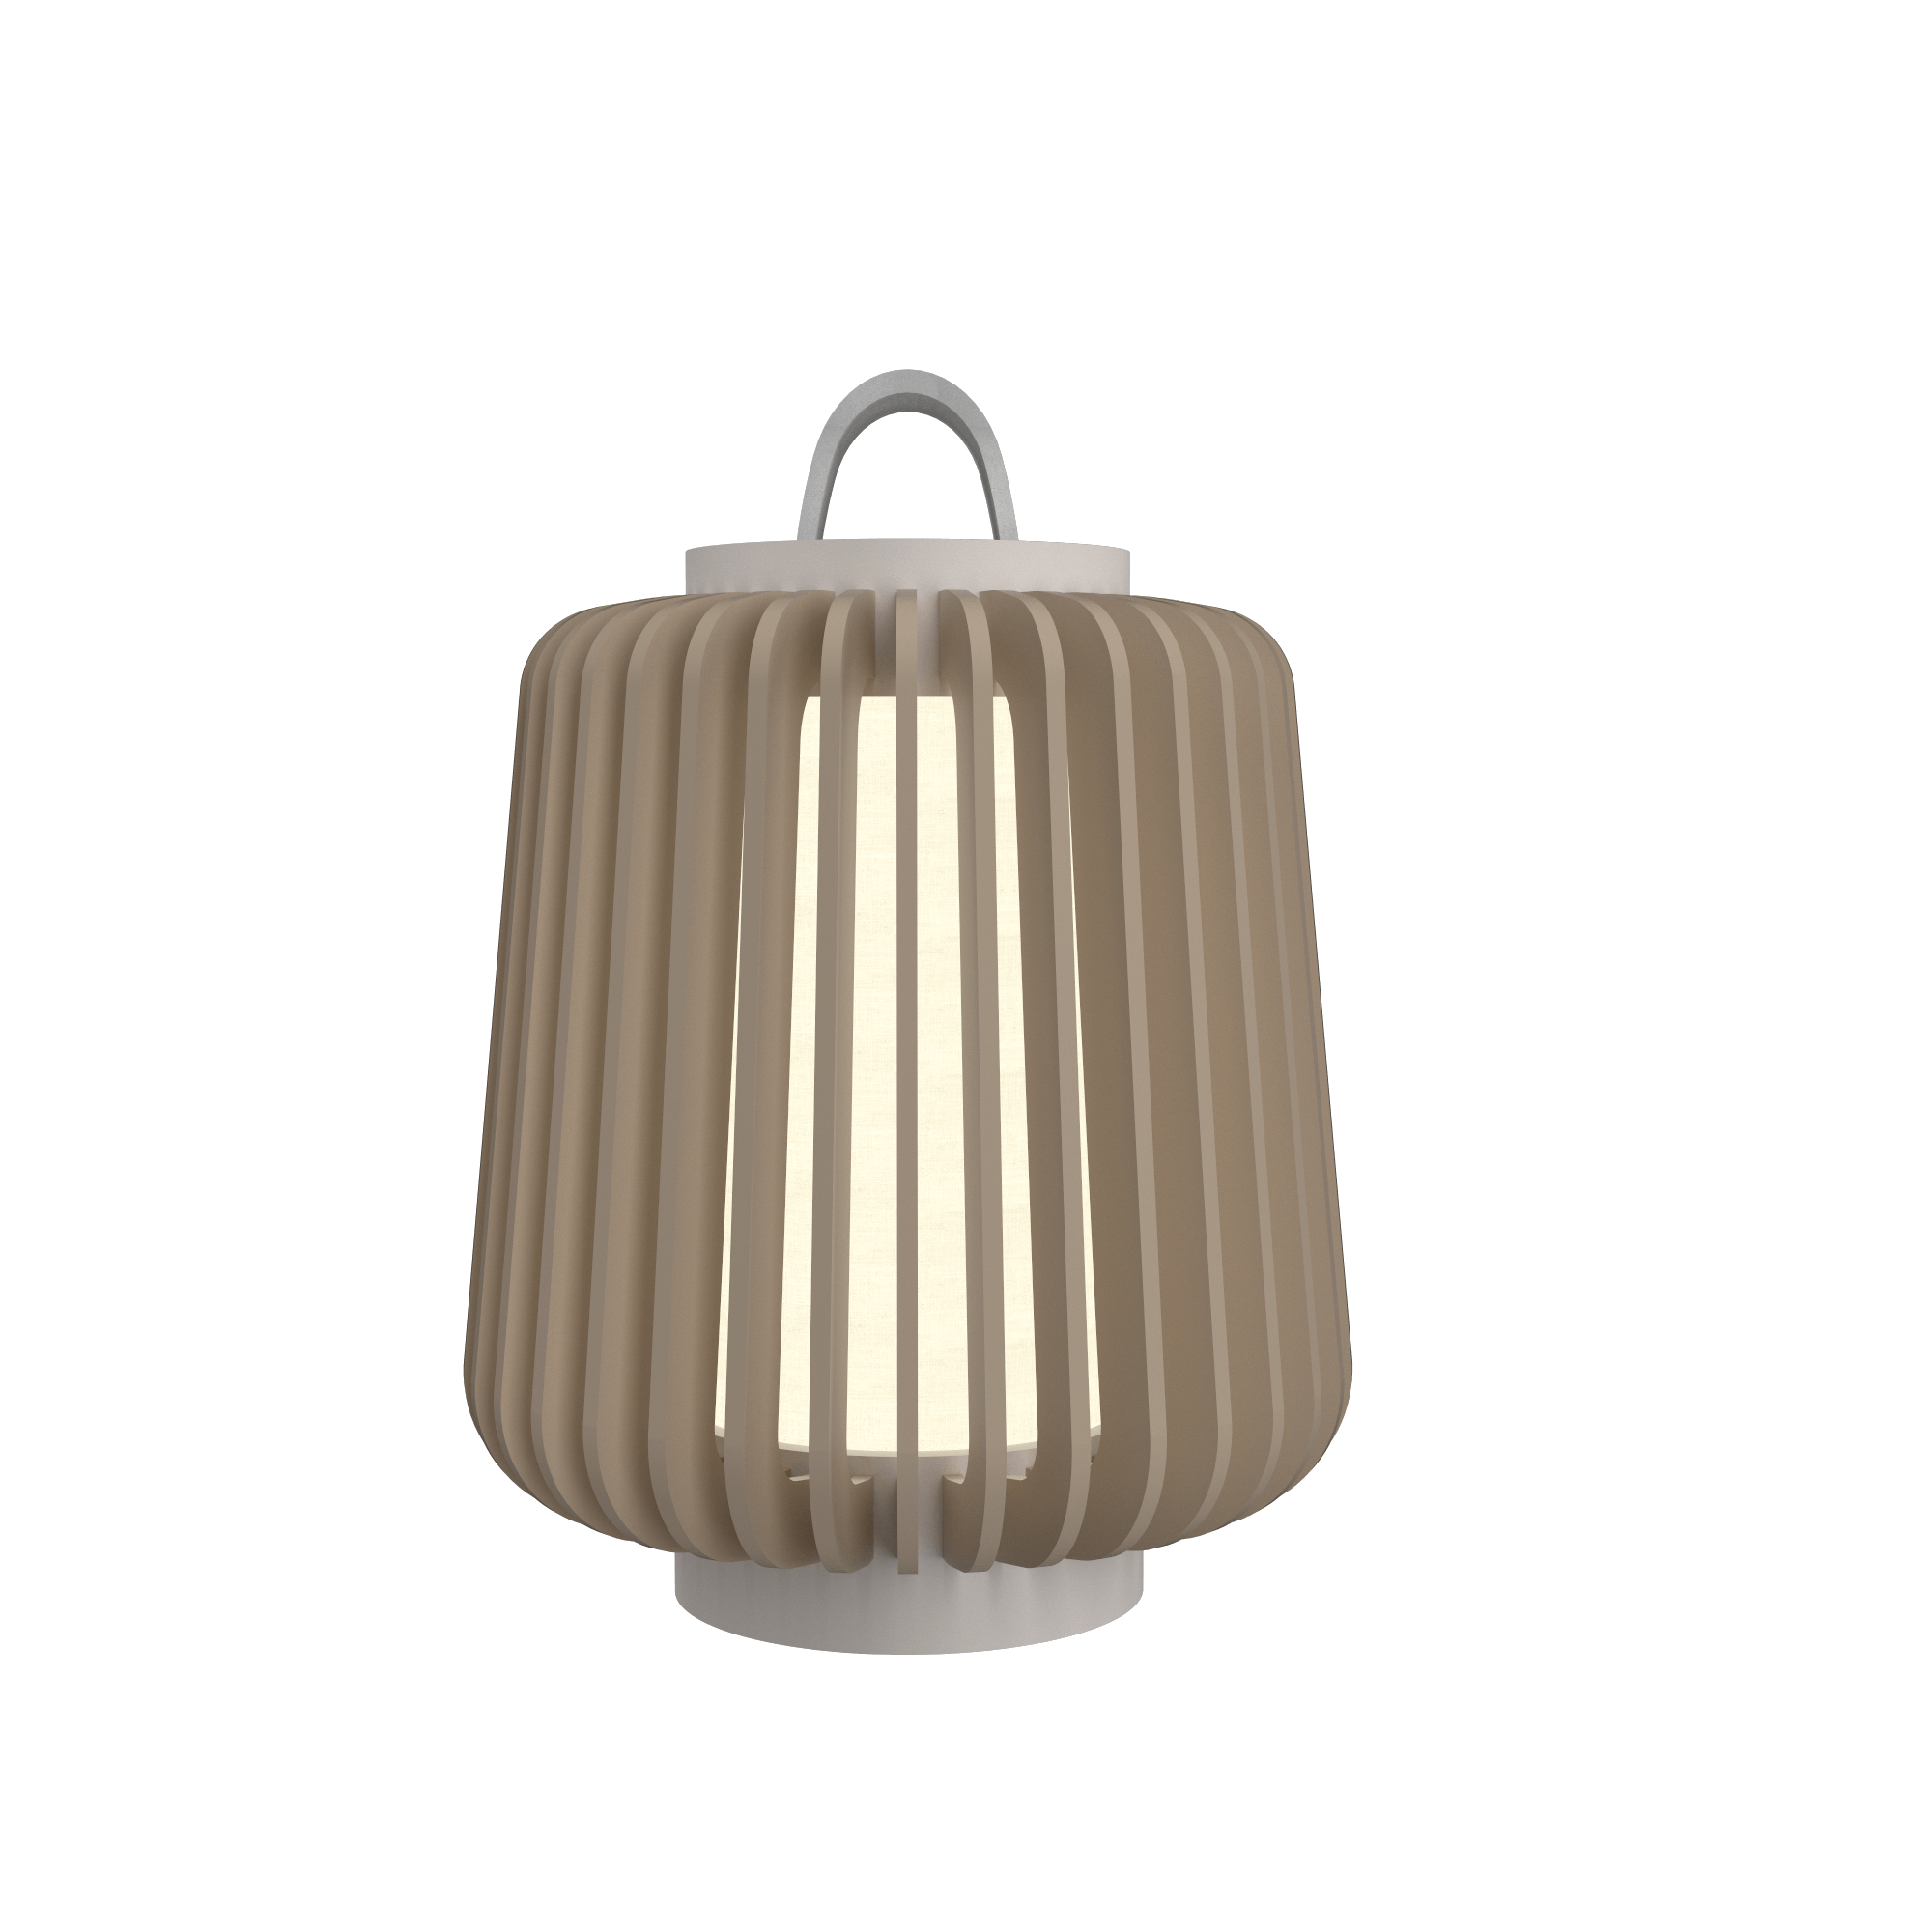 Table Lamp Accord Stecche Di Legno 7059 - Stecche Di Legno Line Accord Lighting | 15. Cappuccino